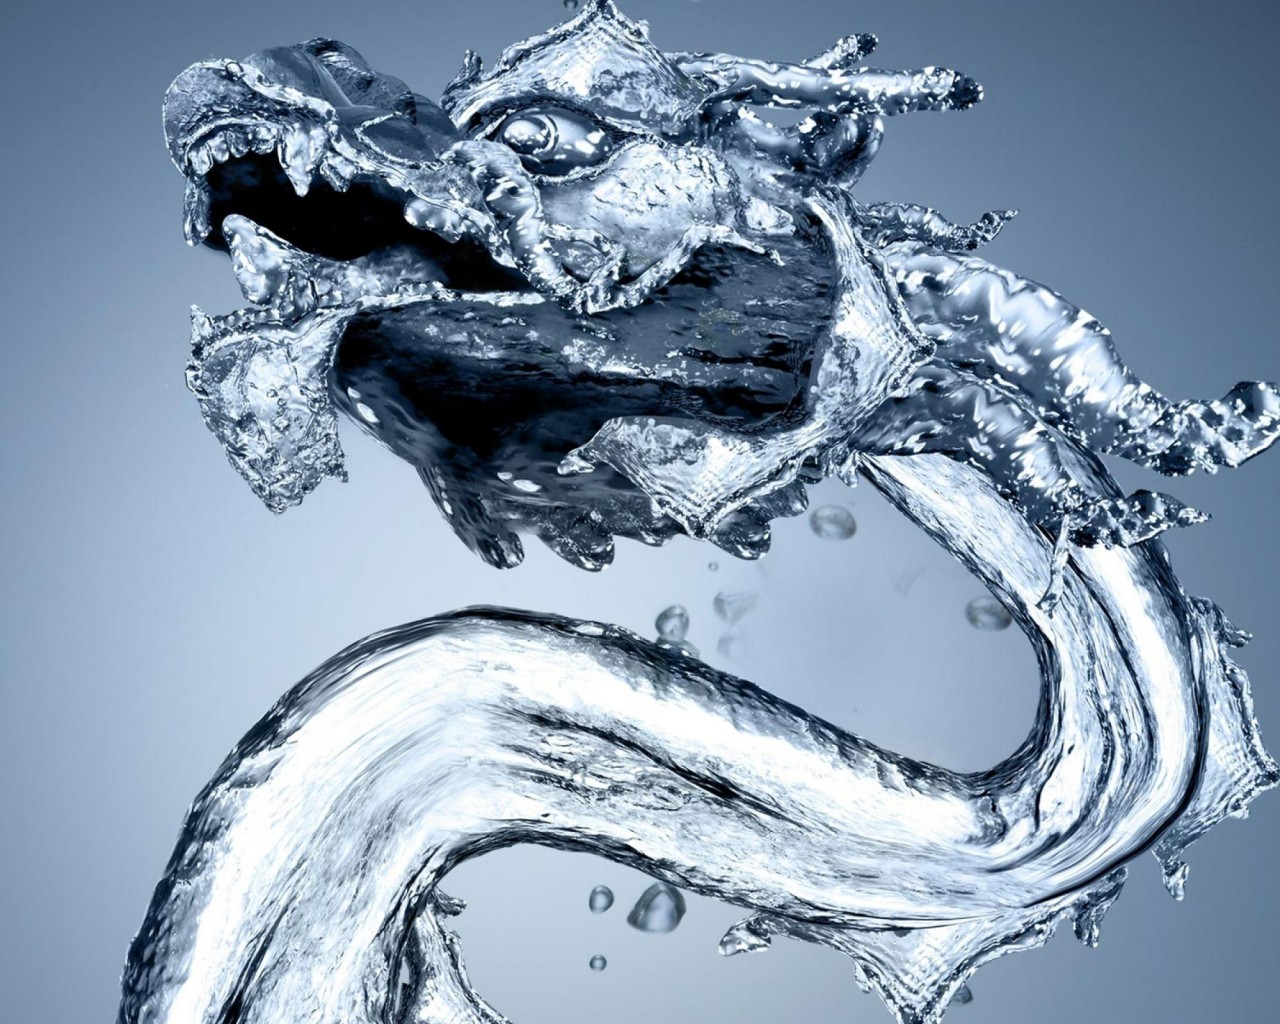 Ice Dragon Images wallpaper Ice Dragon Images hd wallpaper 1280x1024